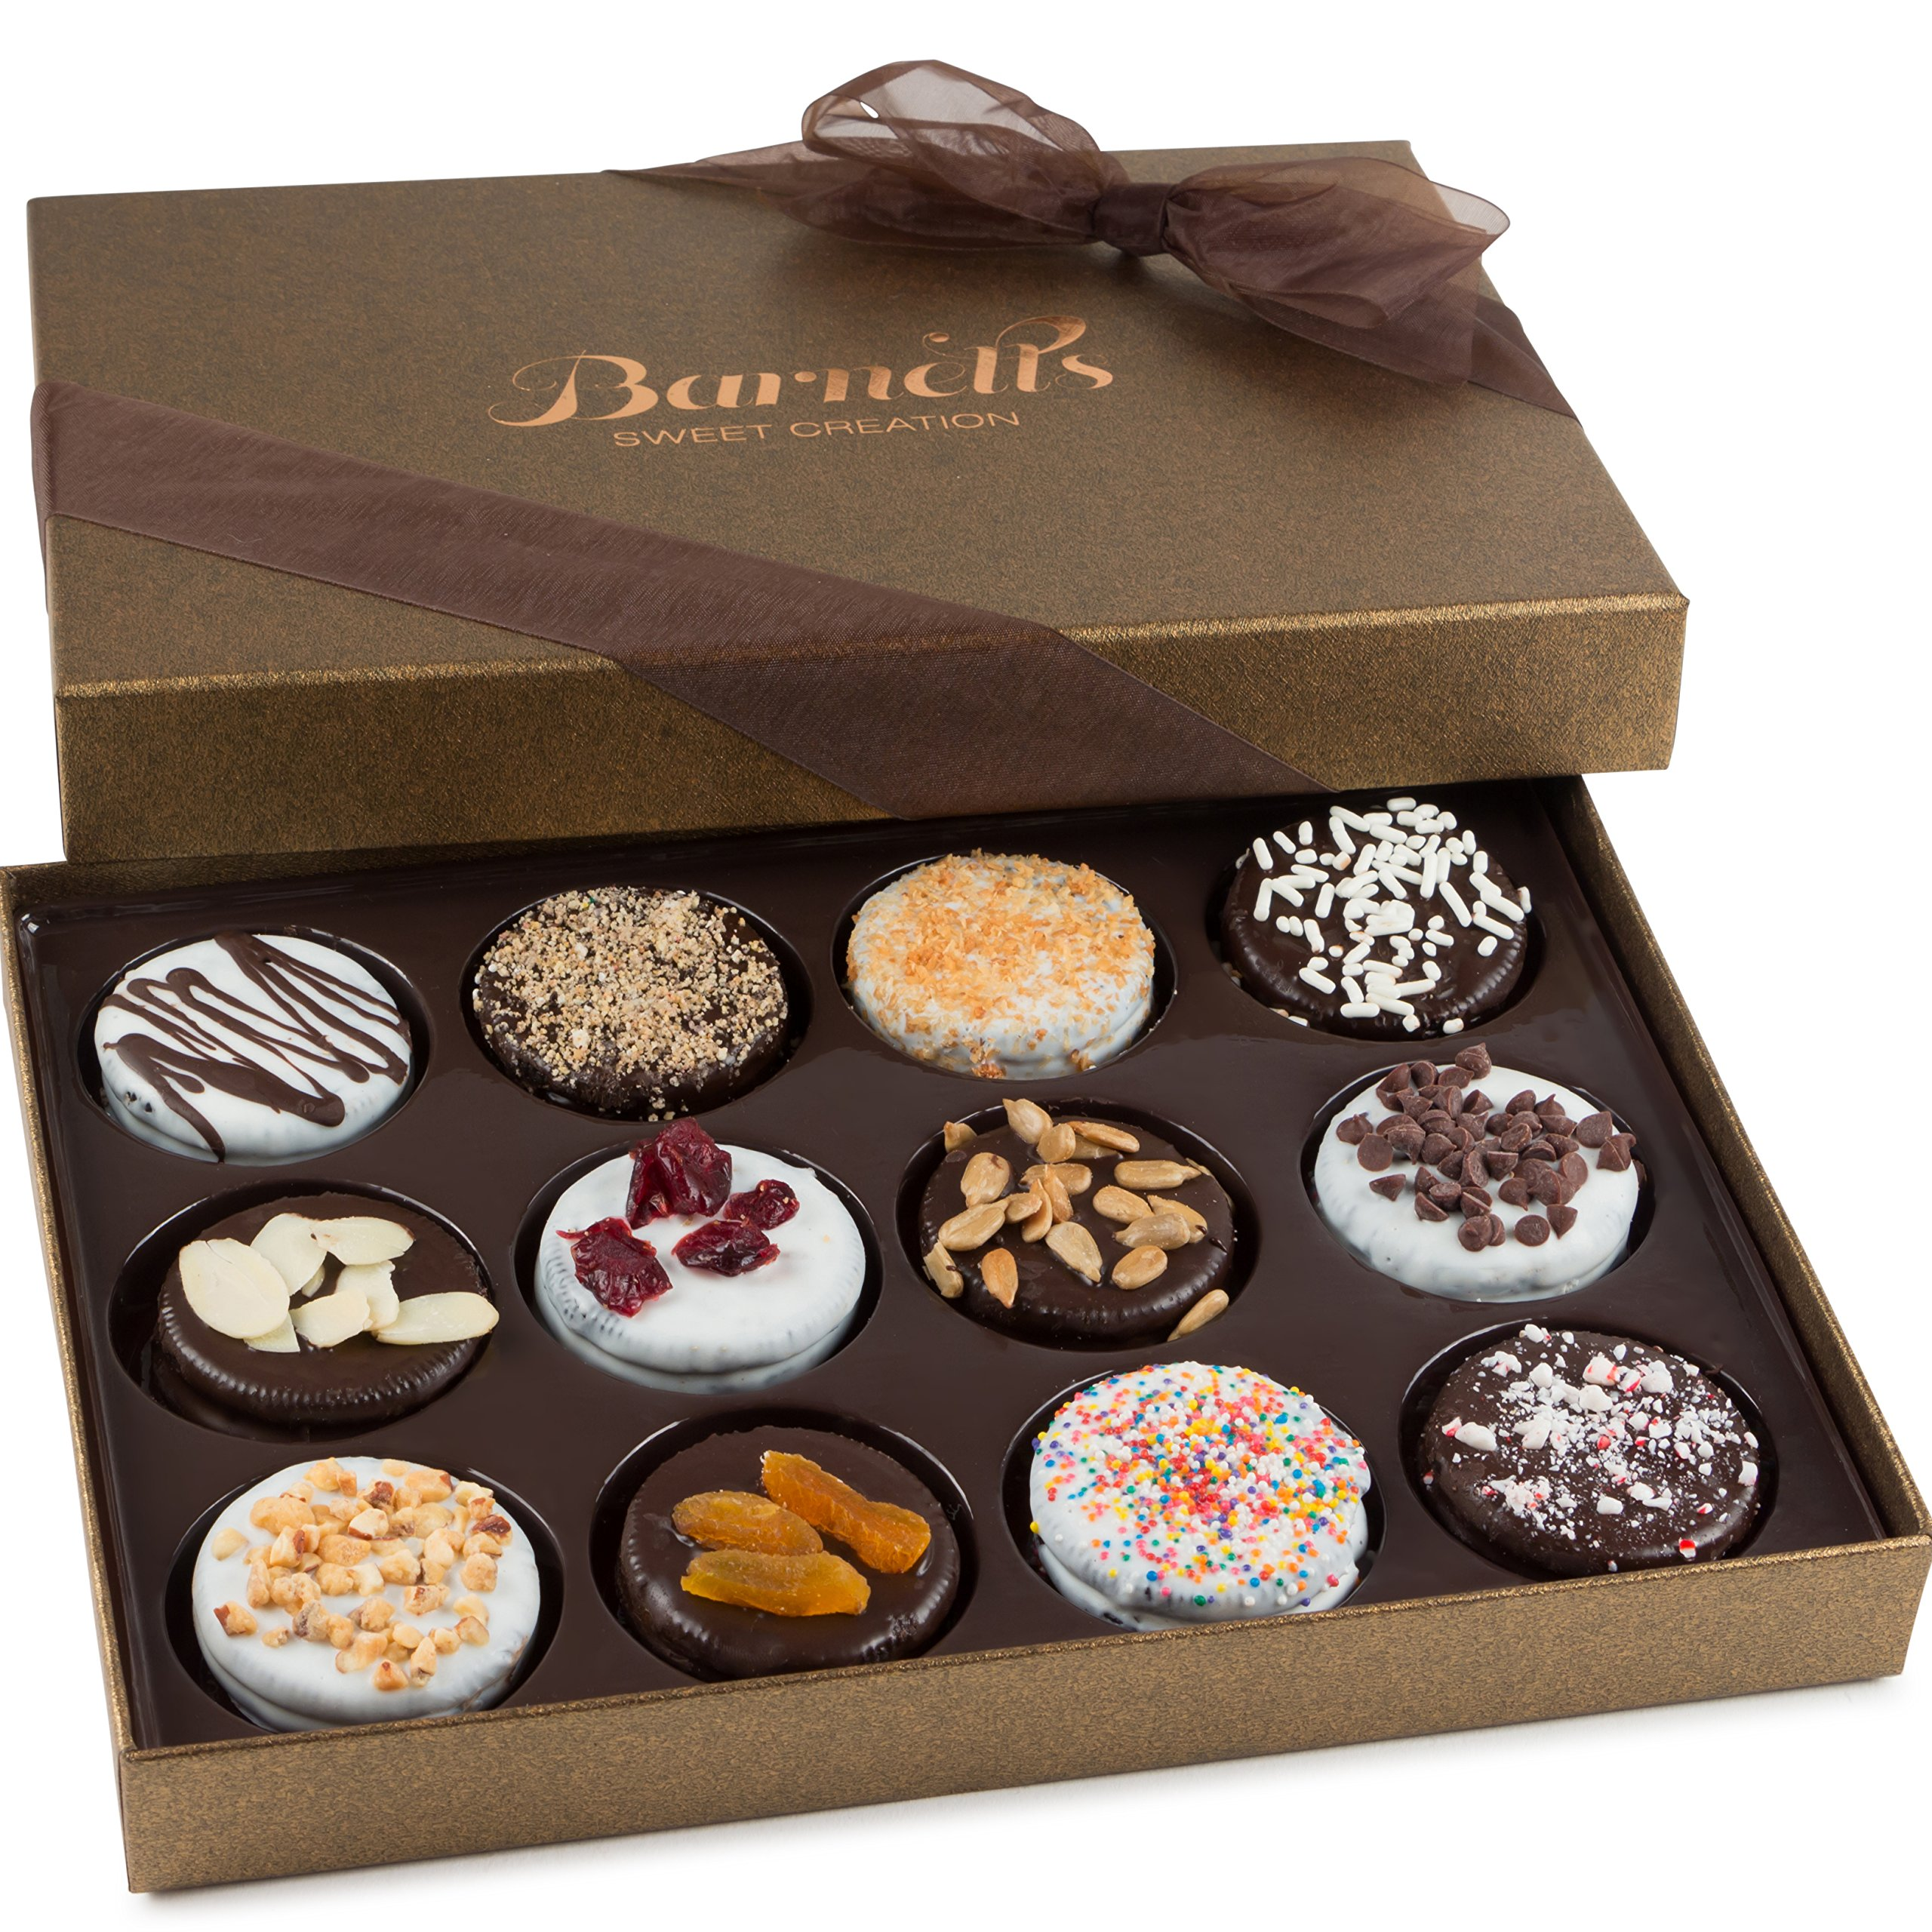 Barnetts Chocolate Cookies Gift Basket Gourmet Christmas Holiday Corporate Food Gifts In Elegant Box